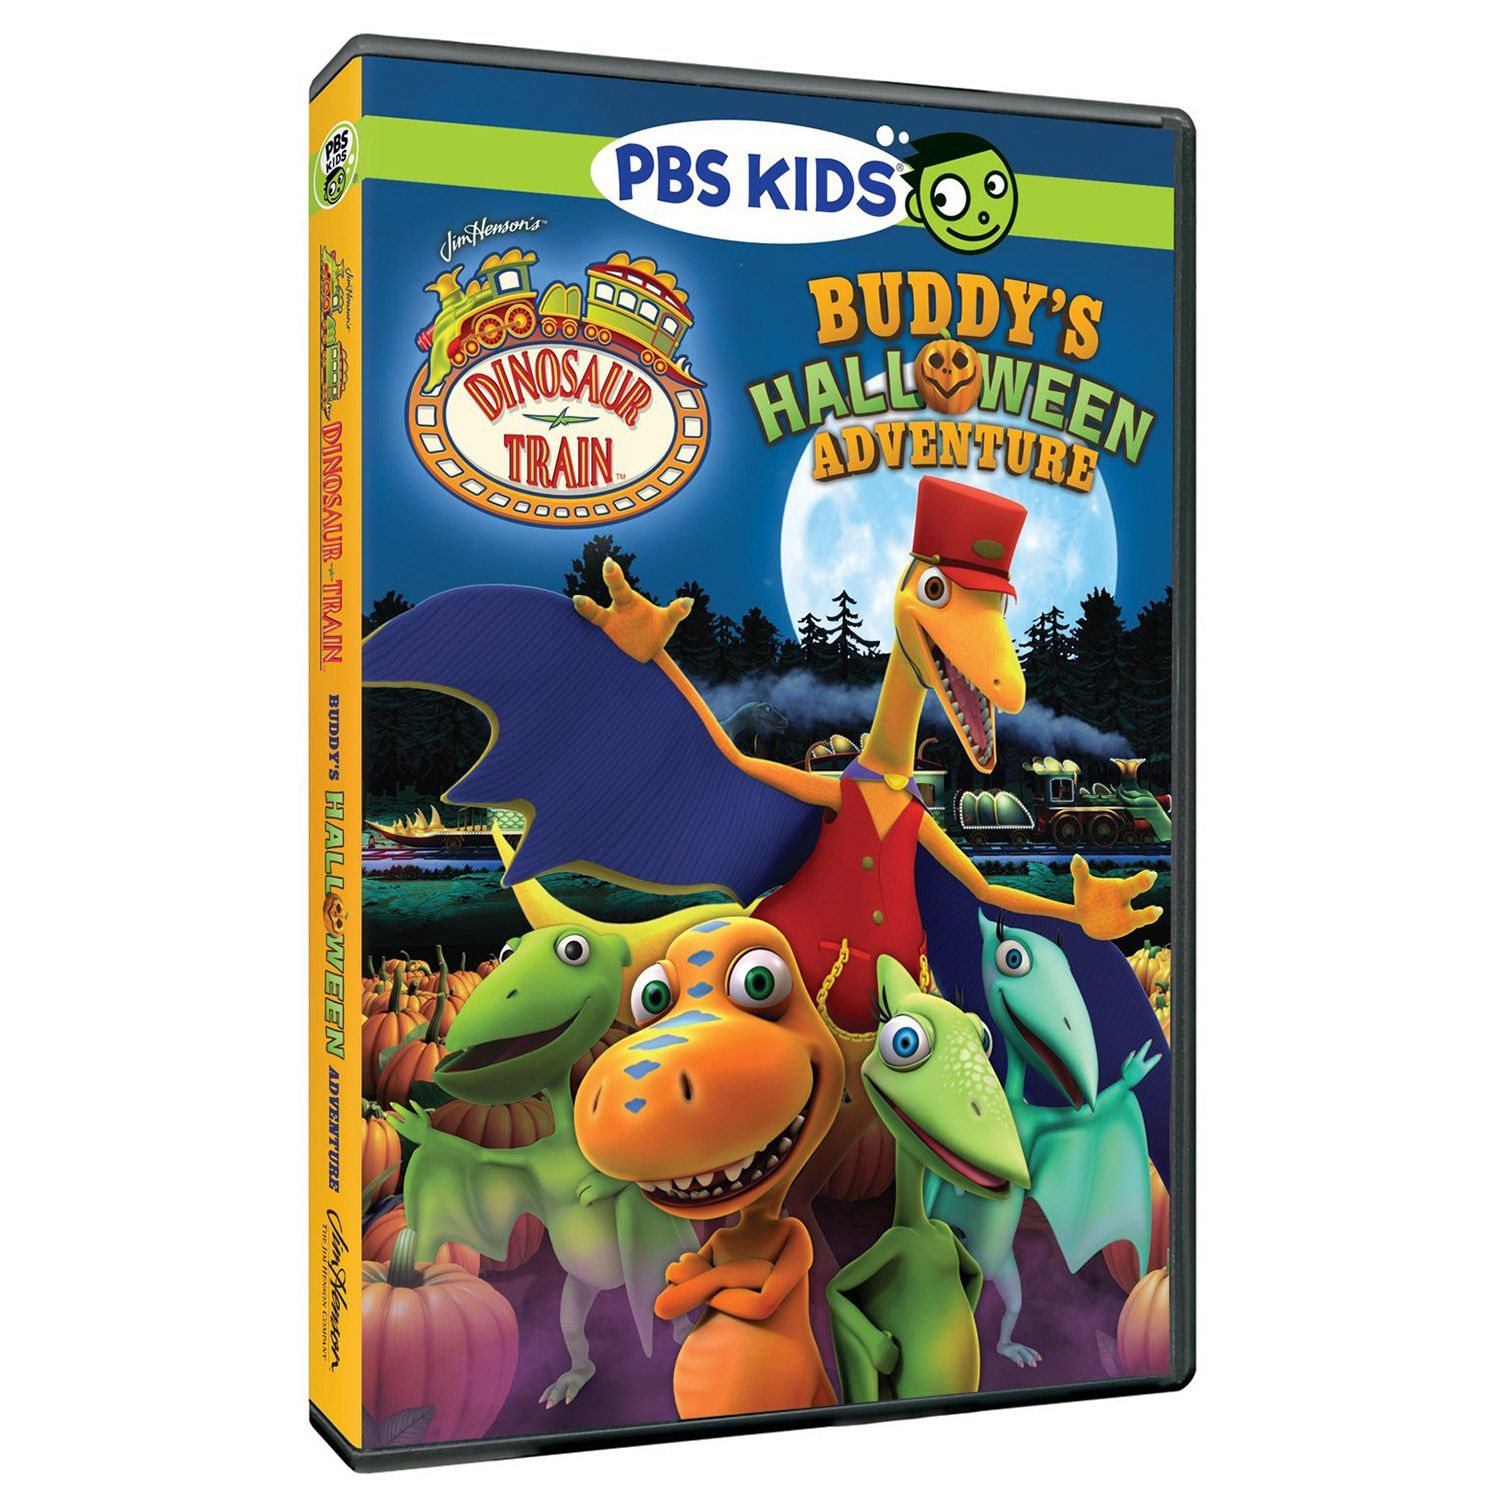 Pbs Kids Halloween Dvd.The Official Pbs Kids Shop Dinosaur Train Buddy S Halloween